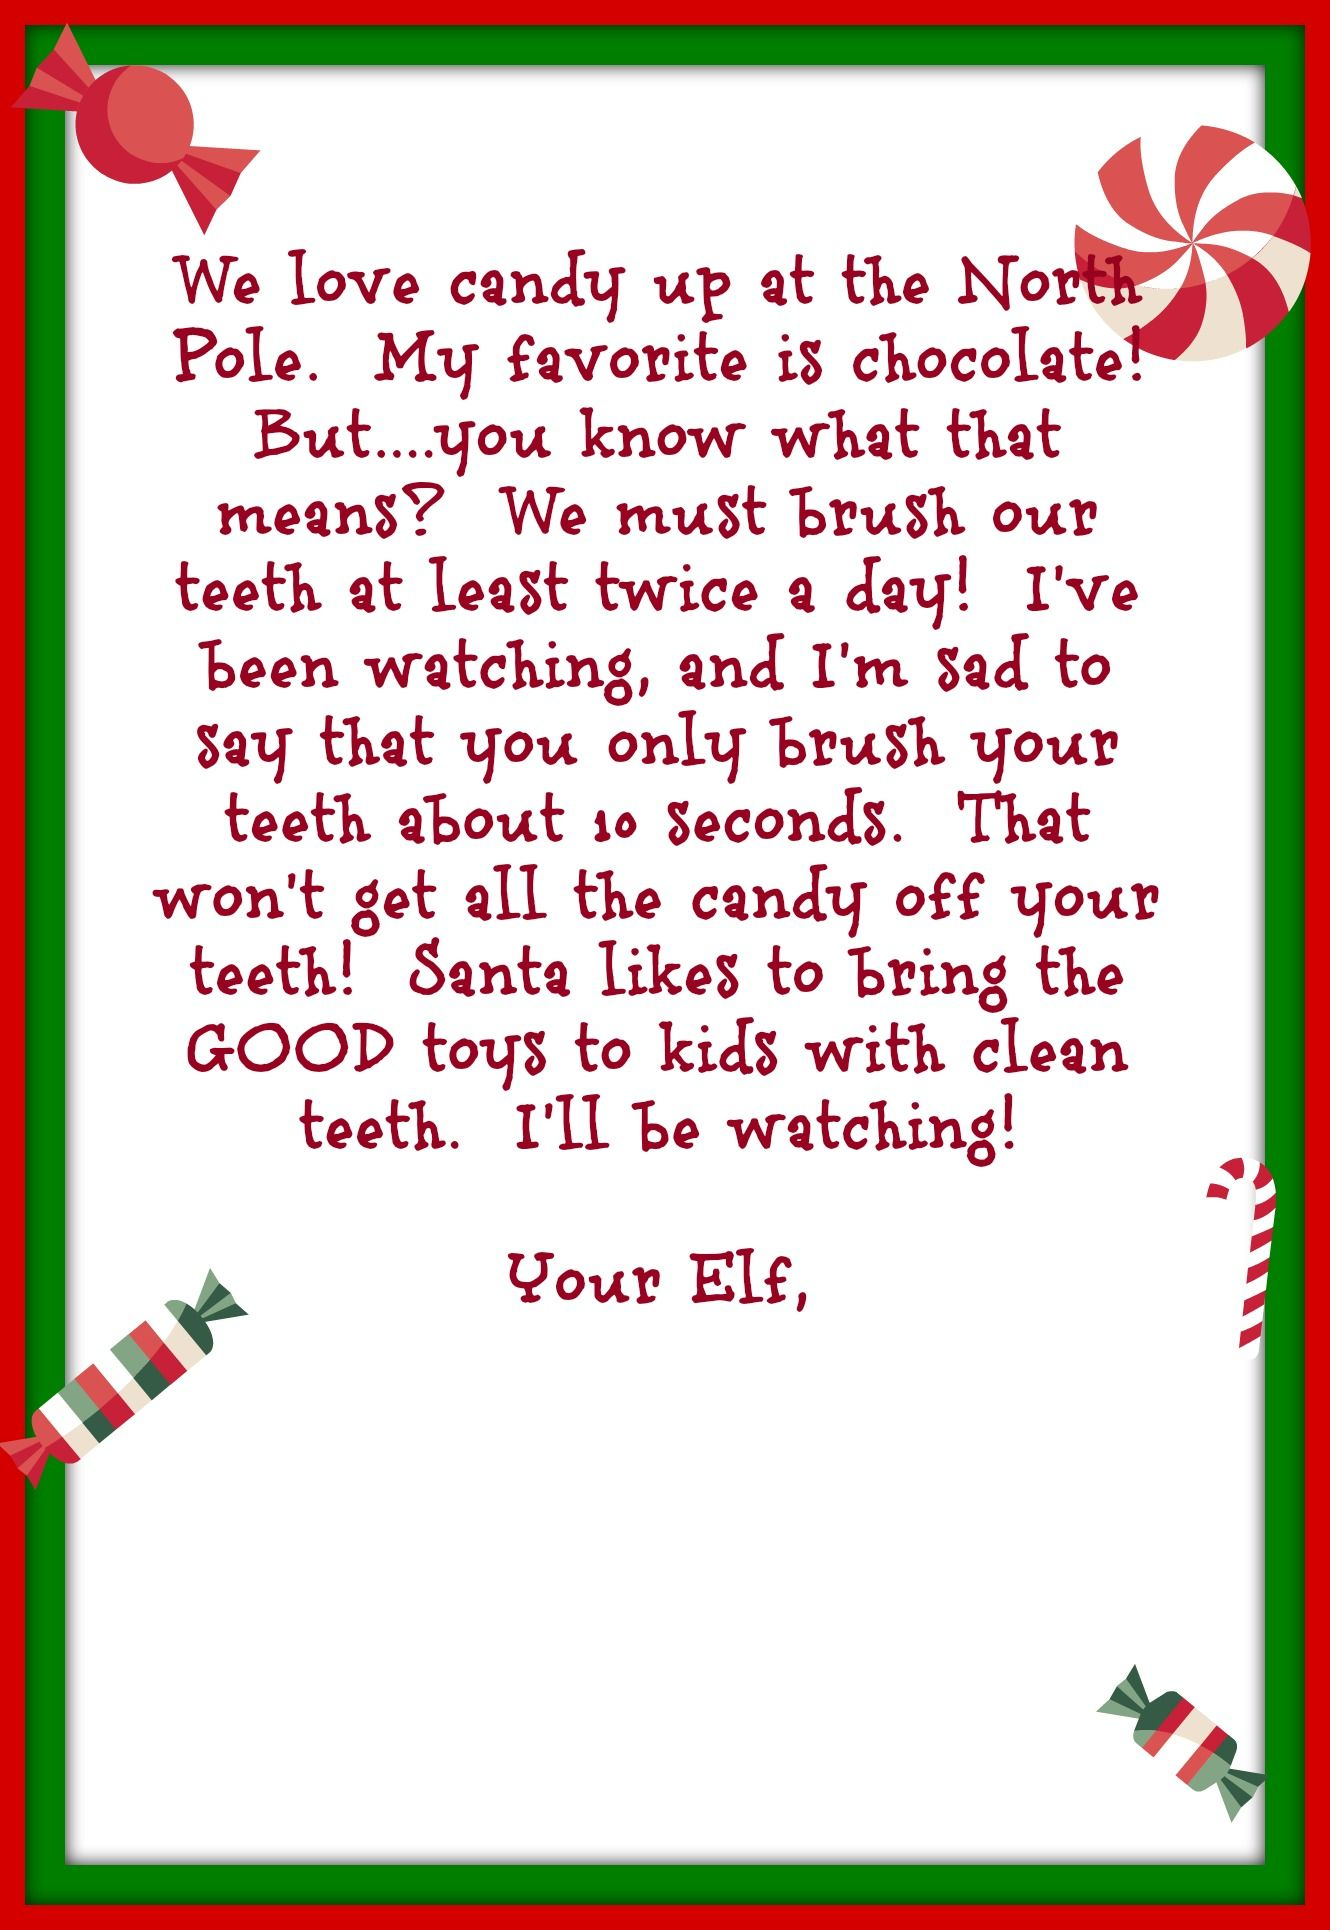 goodbye letter from elf on the shelf free printable Parlo